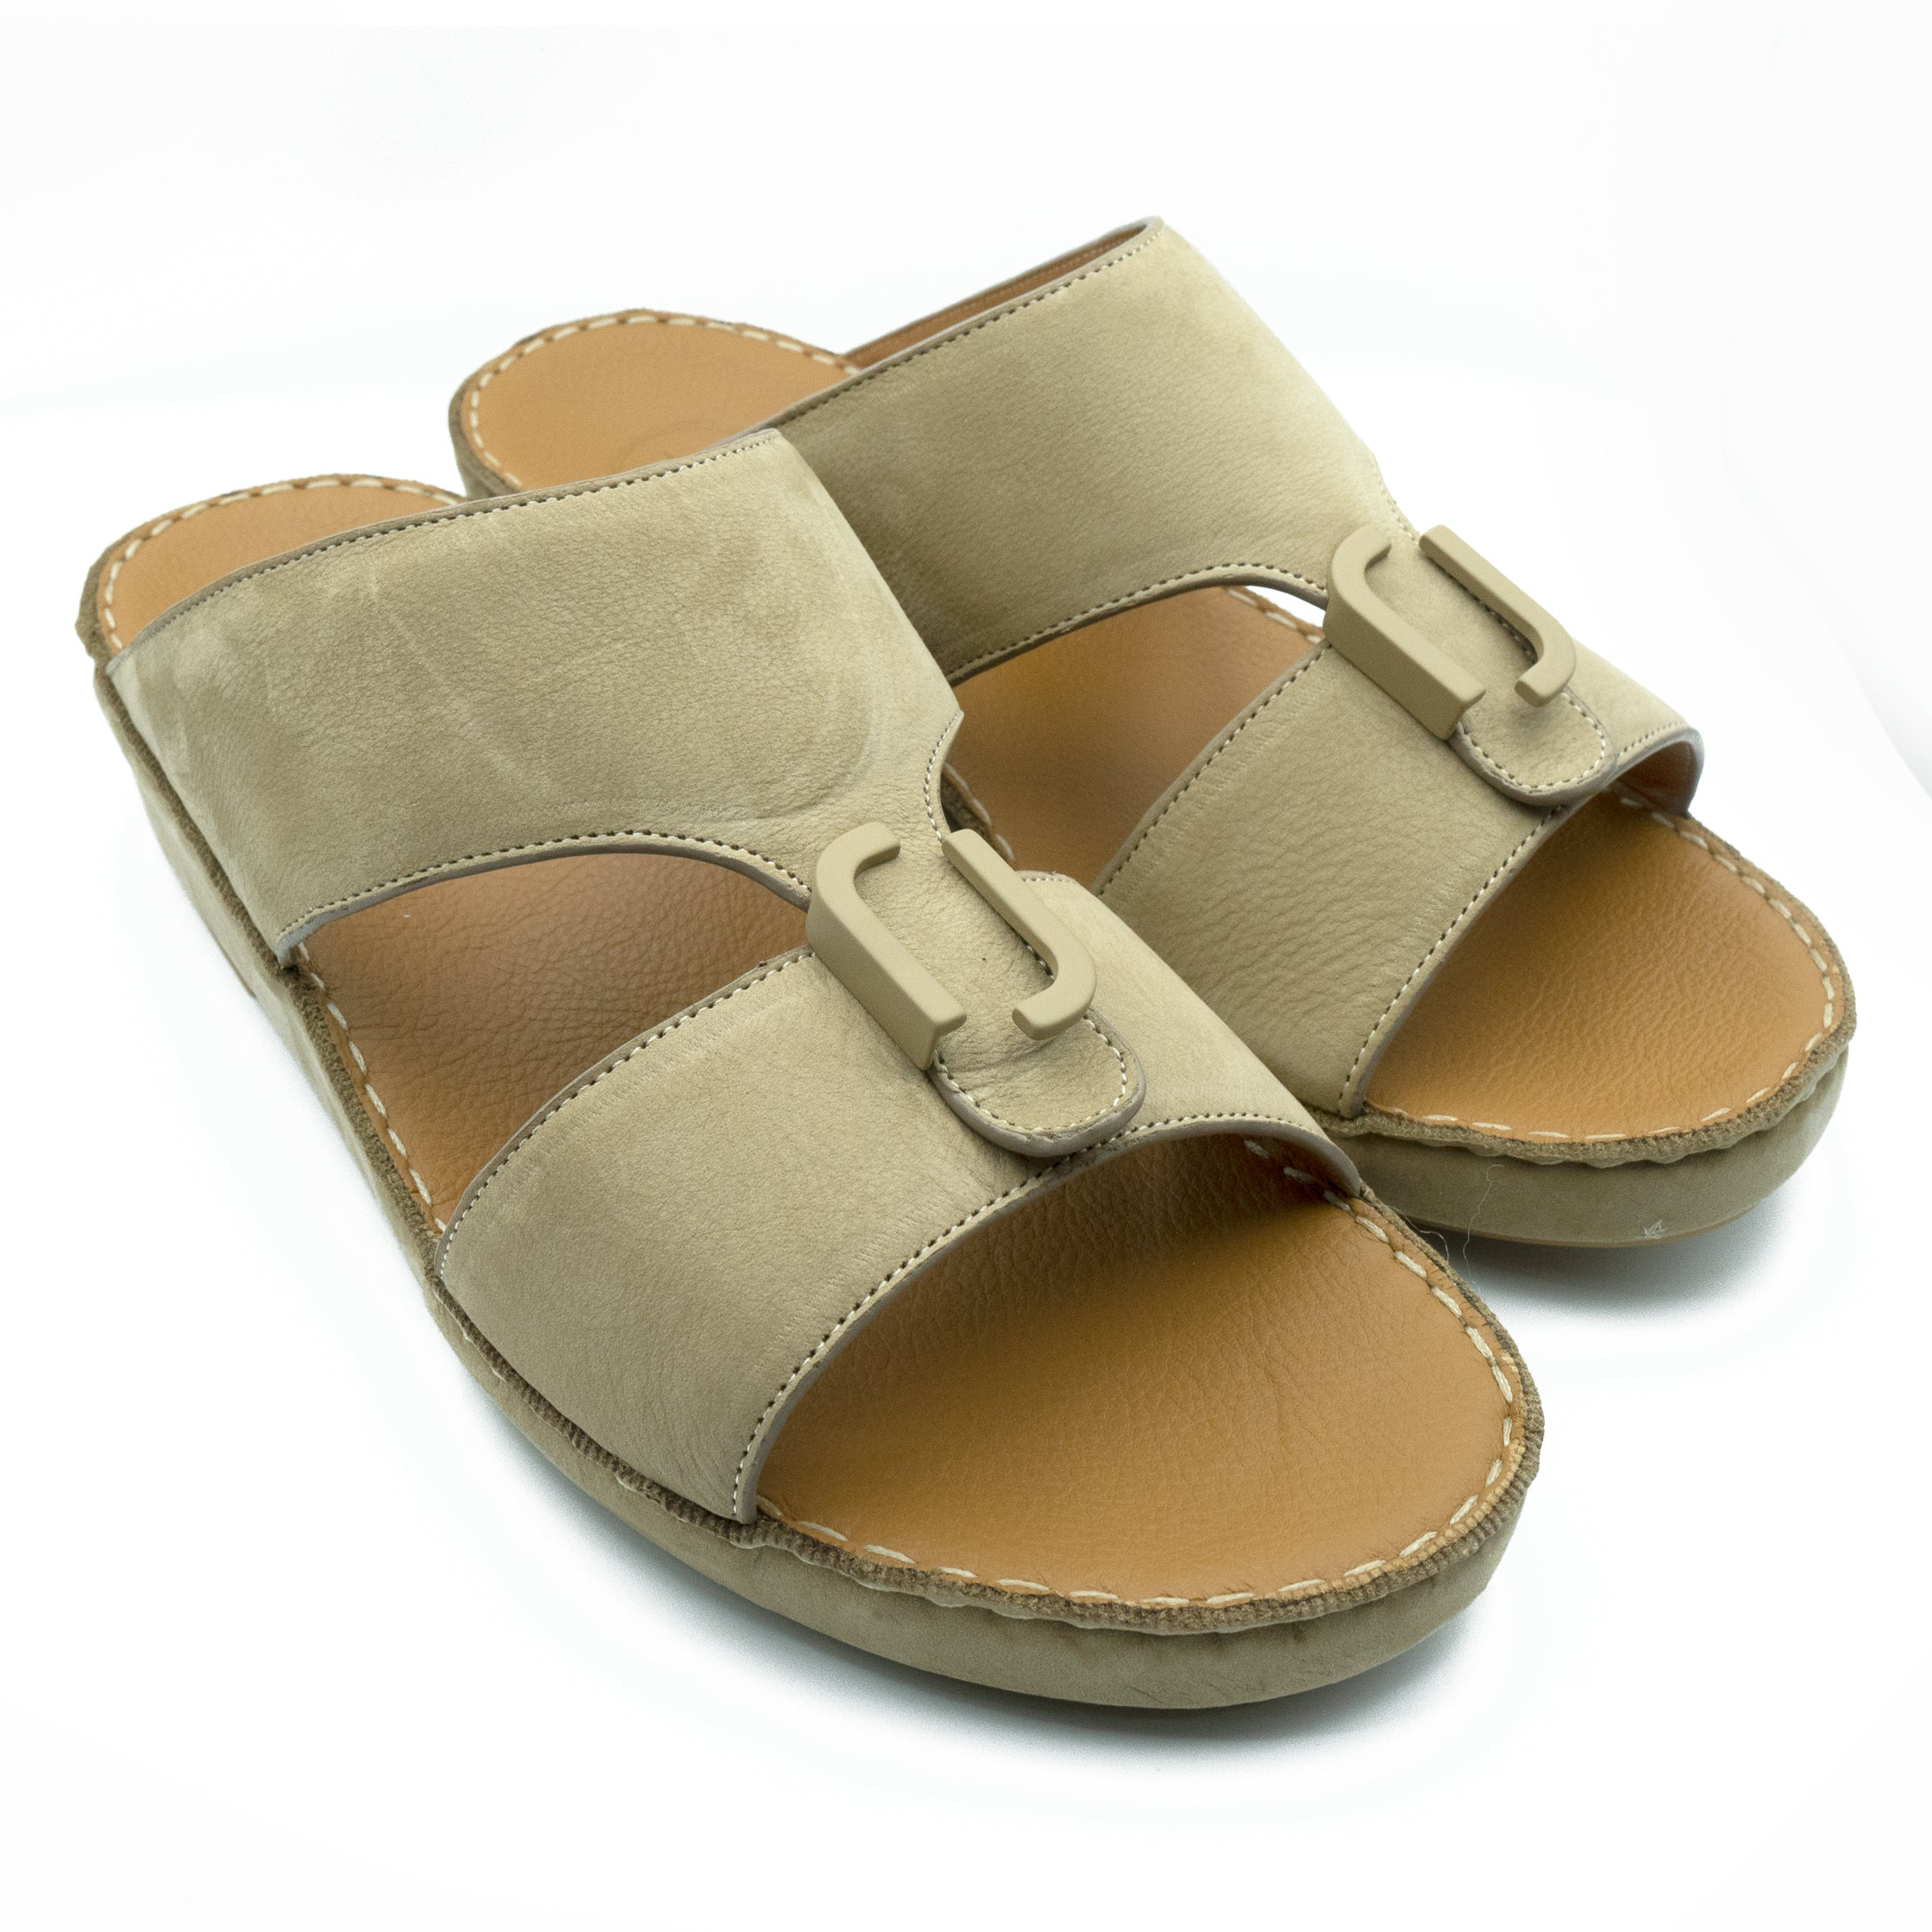 Beige, Suede, Classic, Arabic, Flat, Sandals, Ramadan Collection, Arabic, Sandals, Accessories